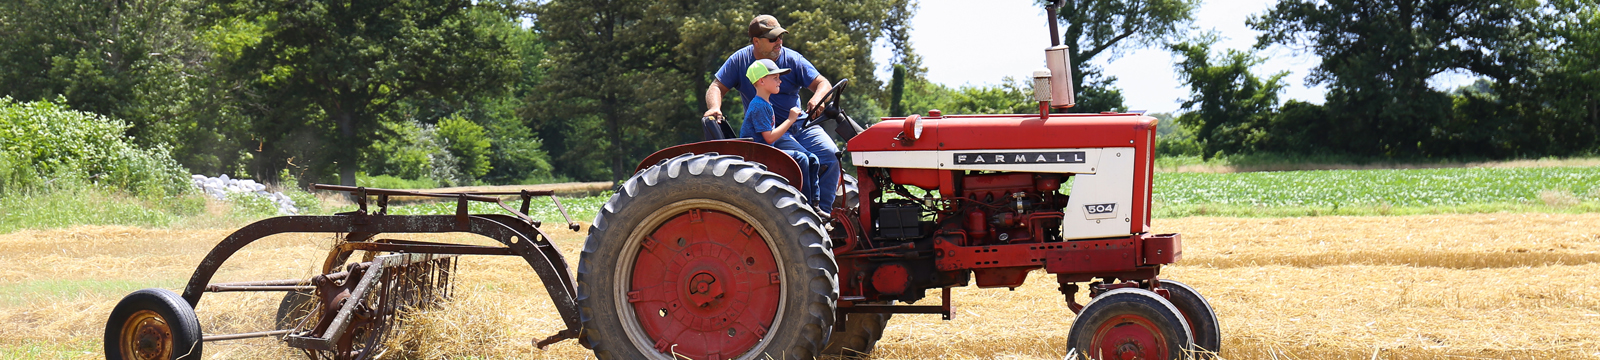 Man teaching his son how to drive a tractor